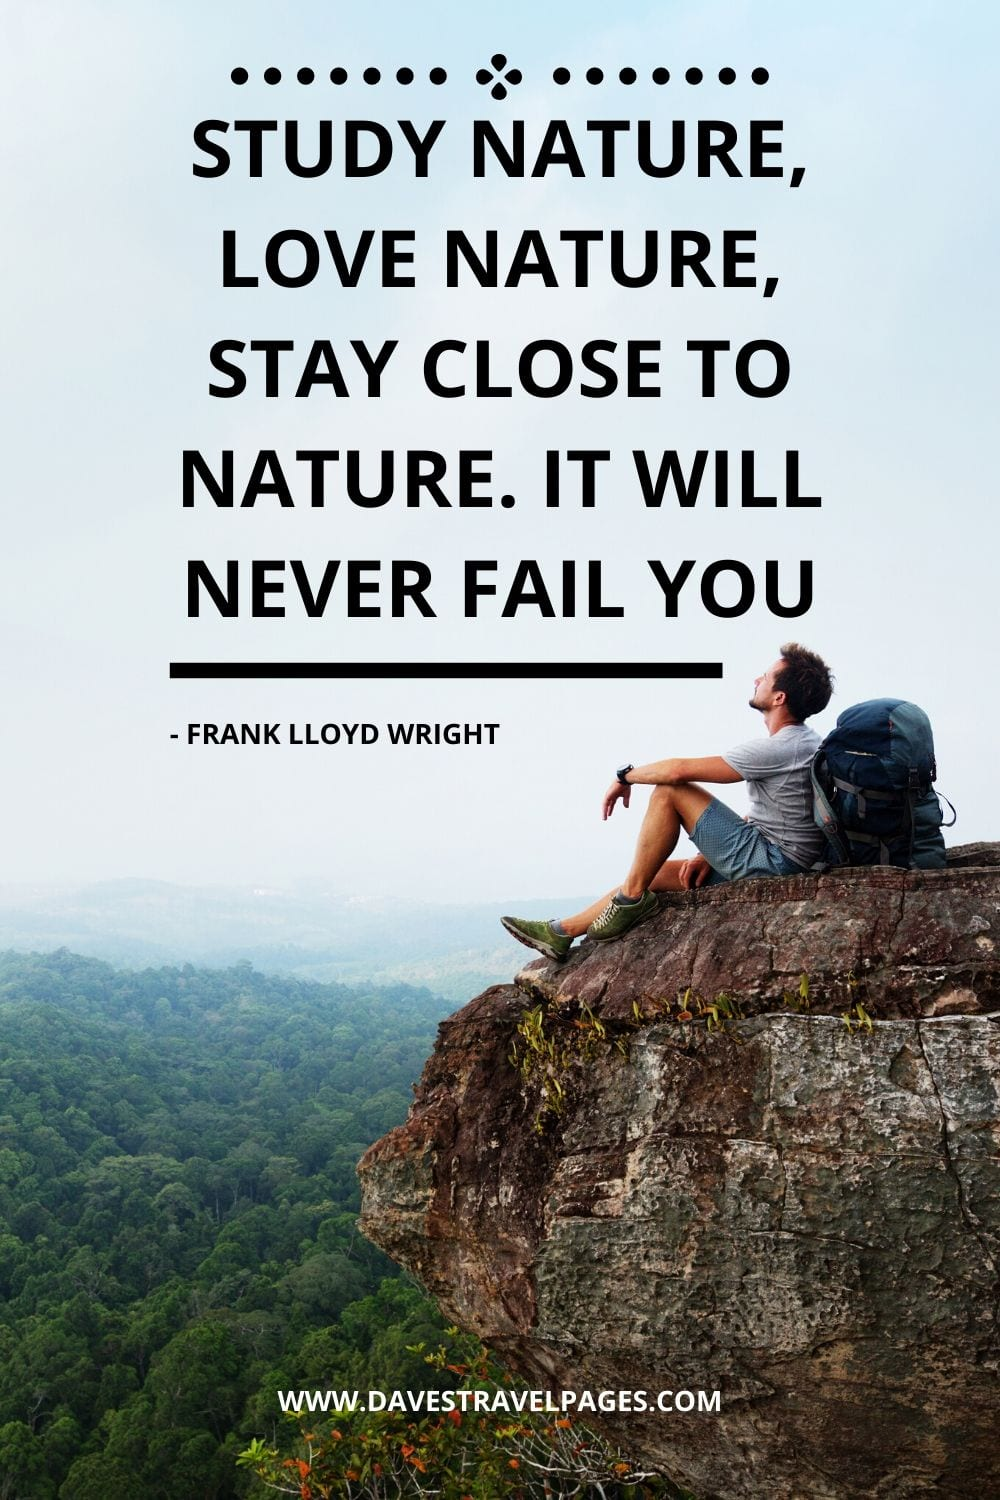 Quotes about nature: Study nature, love nature, stay close to nature. It will never fail you - Frank Lloyd Wright